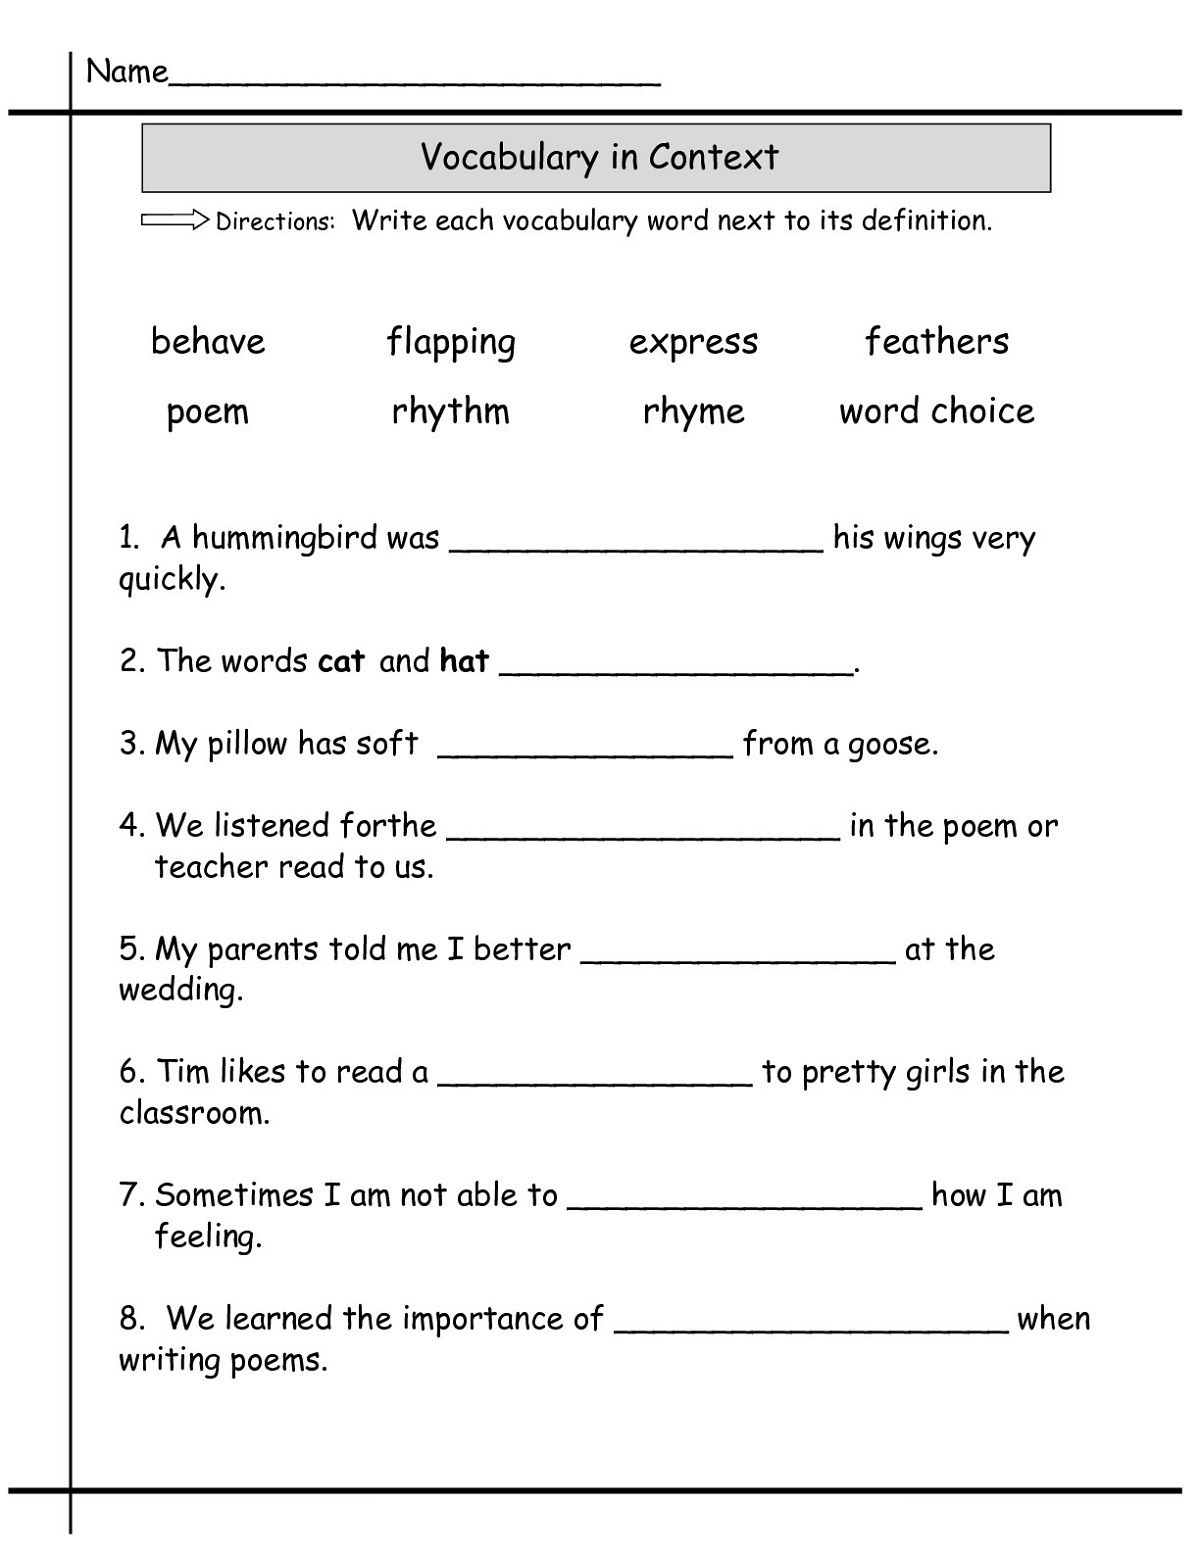 small resolution of https://dubaikhalifas.com/printable-free-grammar-worksheets-second-grade-2-punctuation-negative-contractions-english/